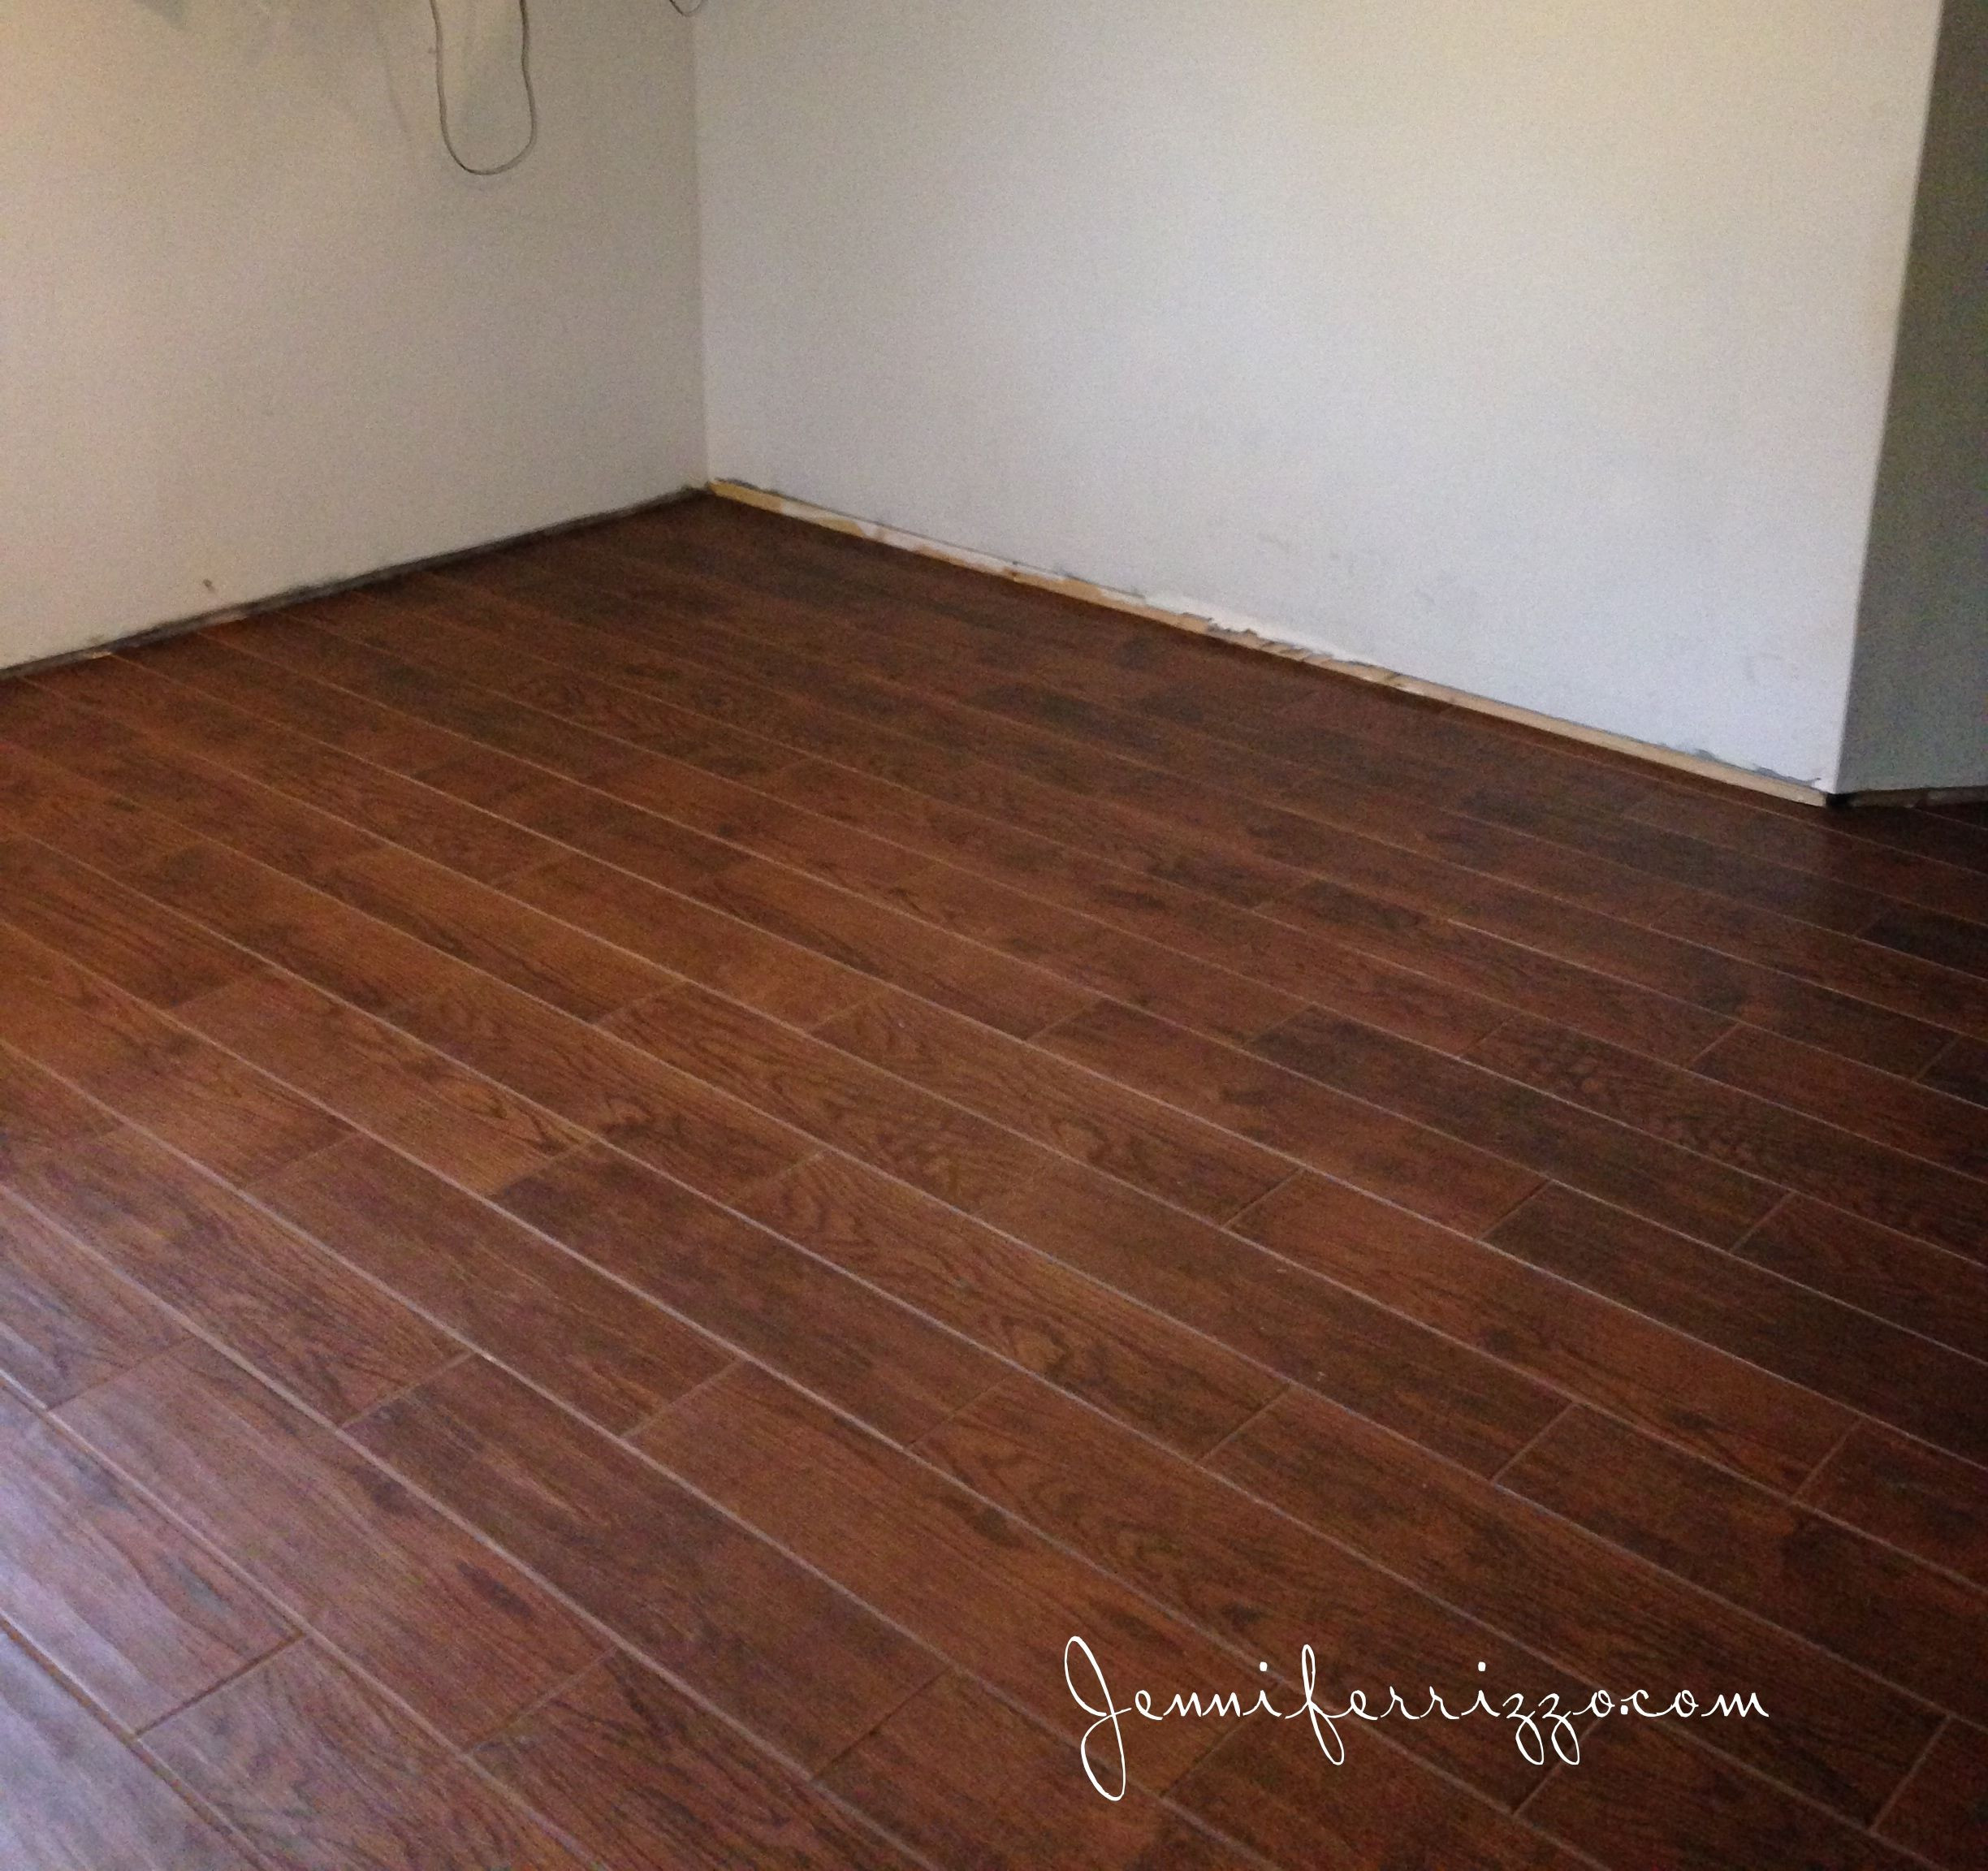 hardwood floor refinishing rock hill sc of our wood look ceramic tile is finally installed crafts pinterest with regard to installation of our wood look ceramic tile from home depot in our basement living room and white ceramic mosaic tile with gray grout in our laundry room